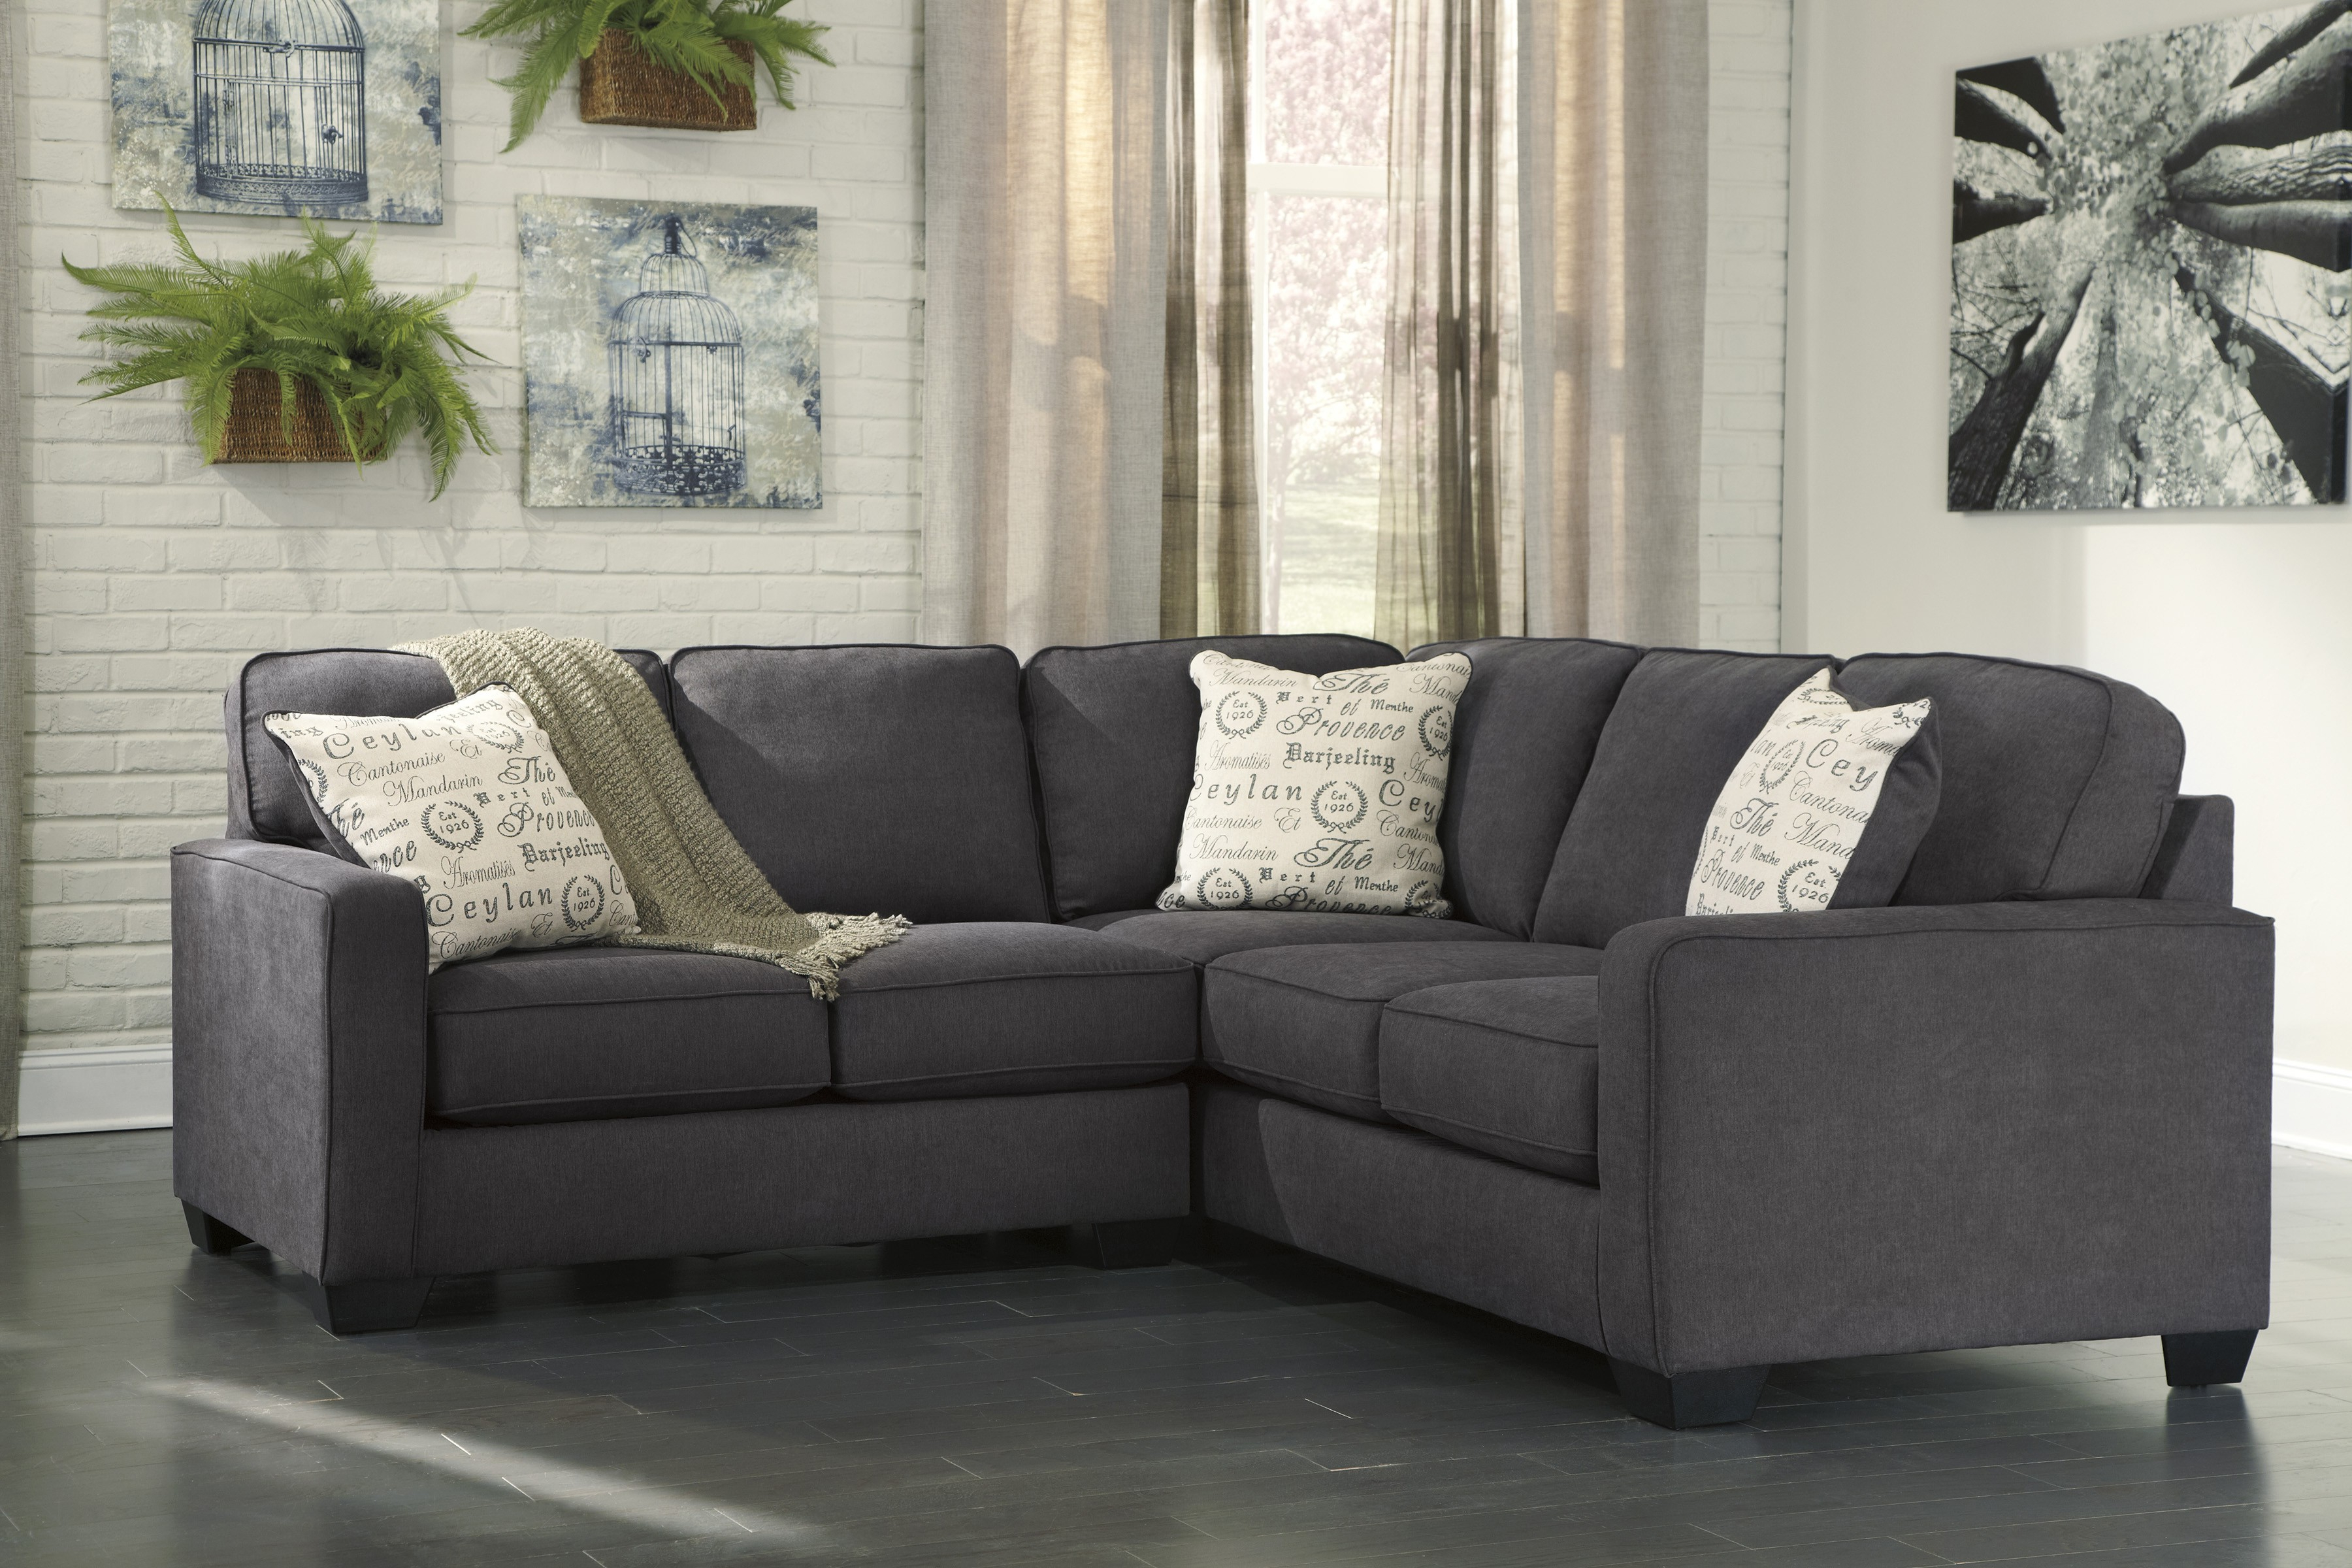 Well Liked Tess 2 Piece Power Reclining Sectionals With Laf Chaise In Alenya Charcoal Piece Sectional Sofa For Furnitureusa Raf Love Tures (View 19 of 20)